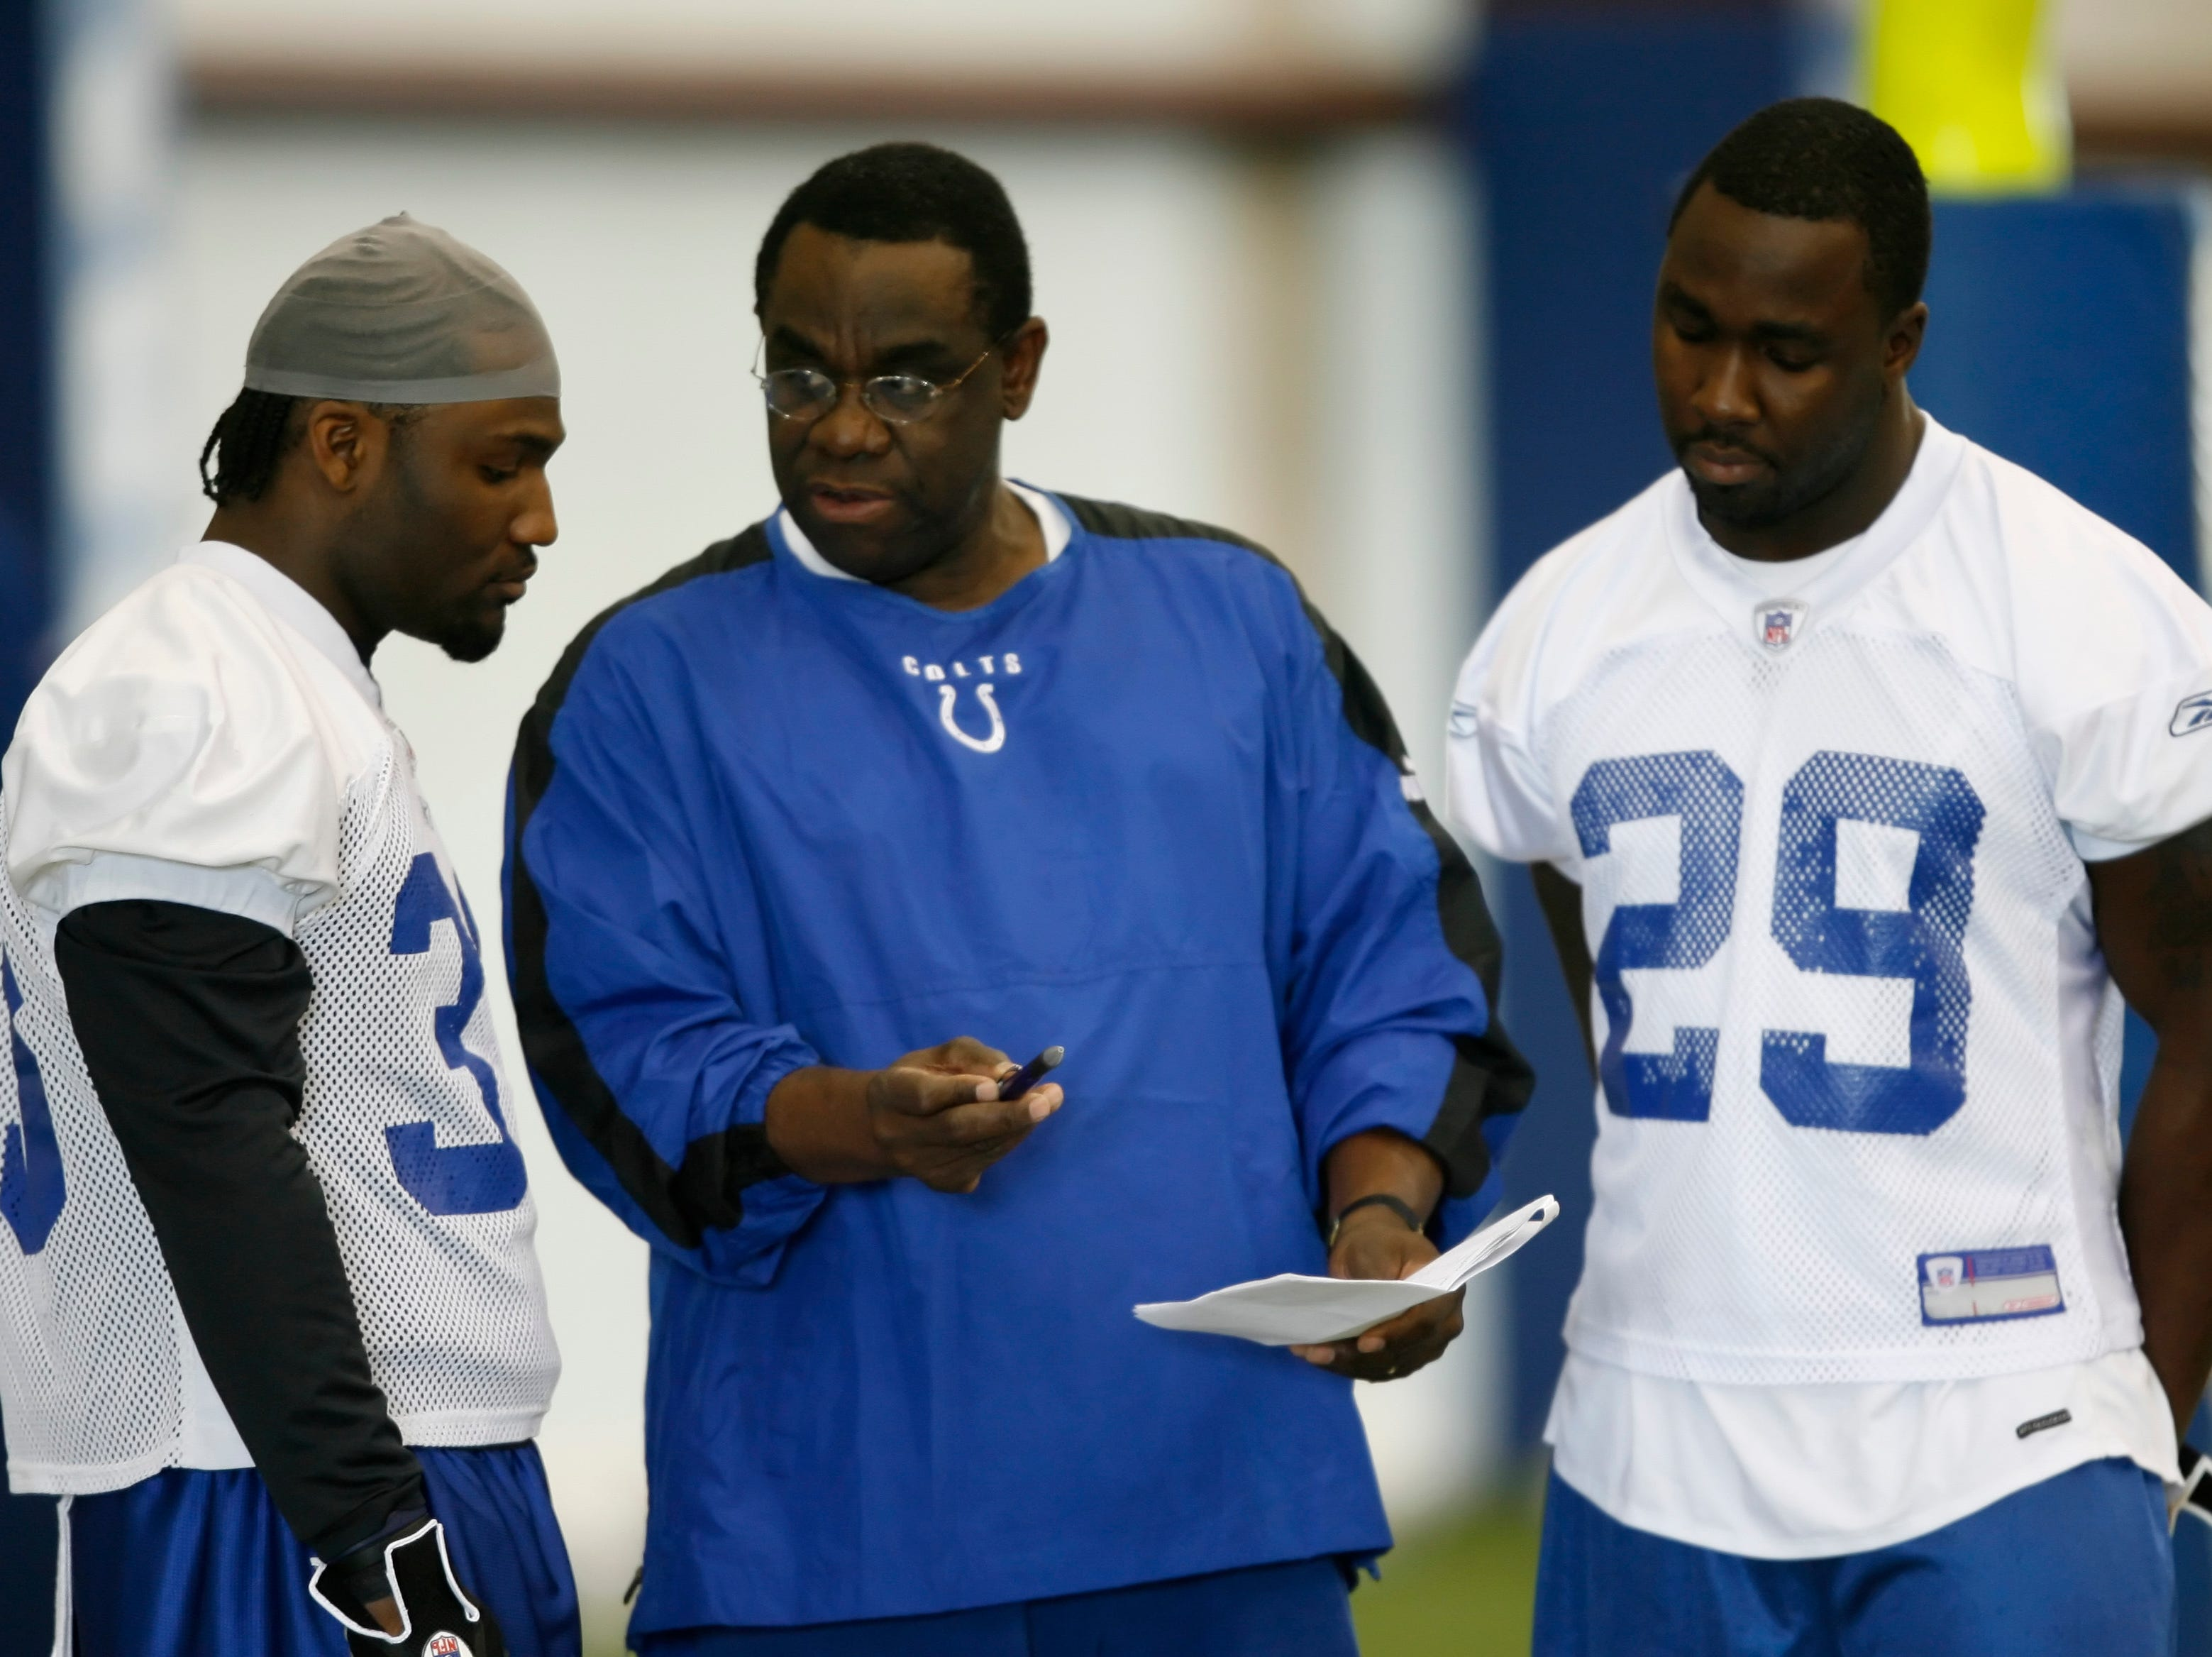 Dominic Rhodes (left), and fellow Colts running back Joseph Addai chat with Gene Huey, running backs coach.  Colts Mini Camp at the Colts Complex, Indianapolis, IN, May 19, 2006.